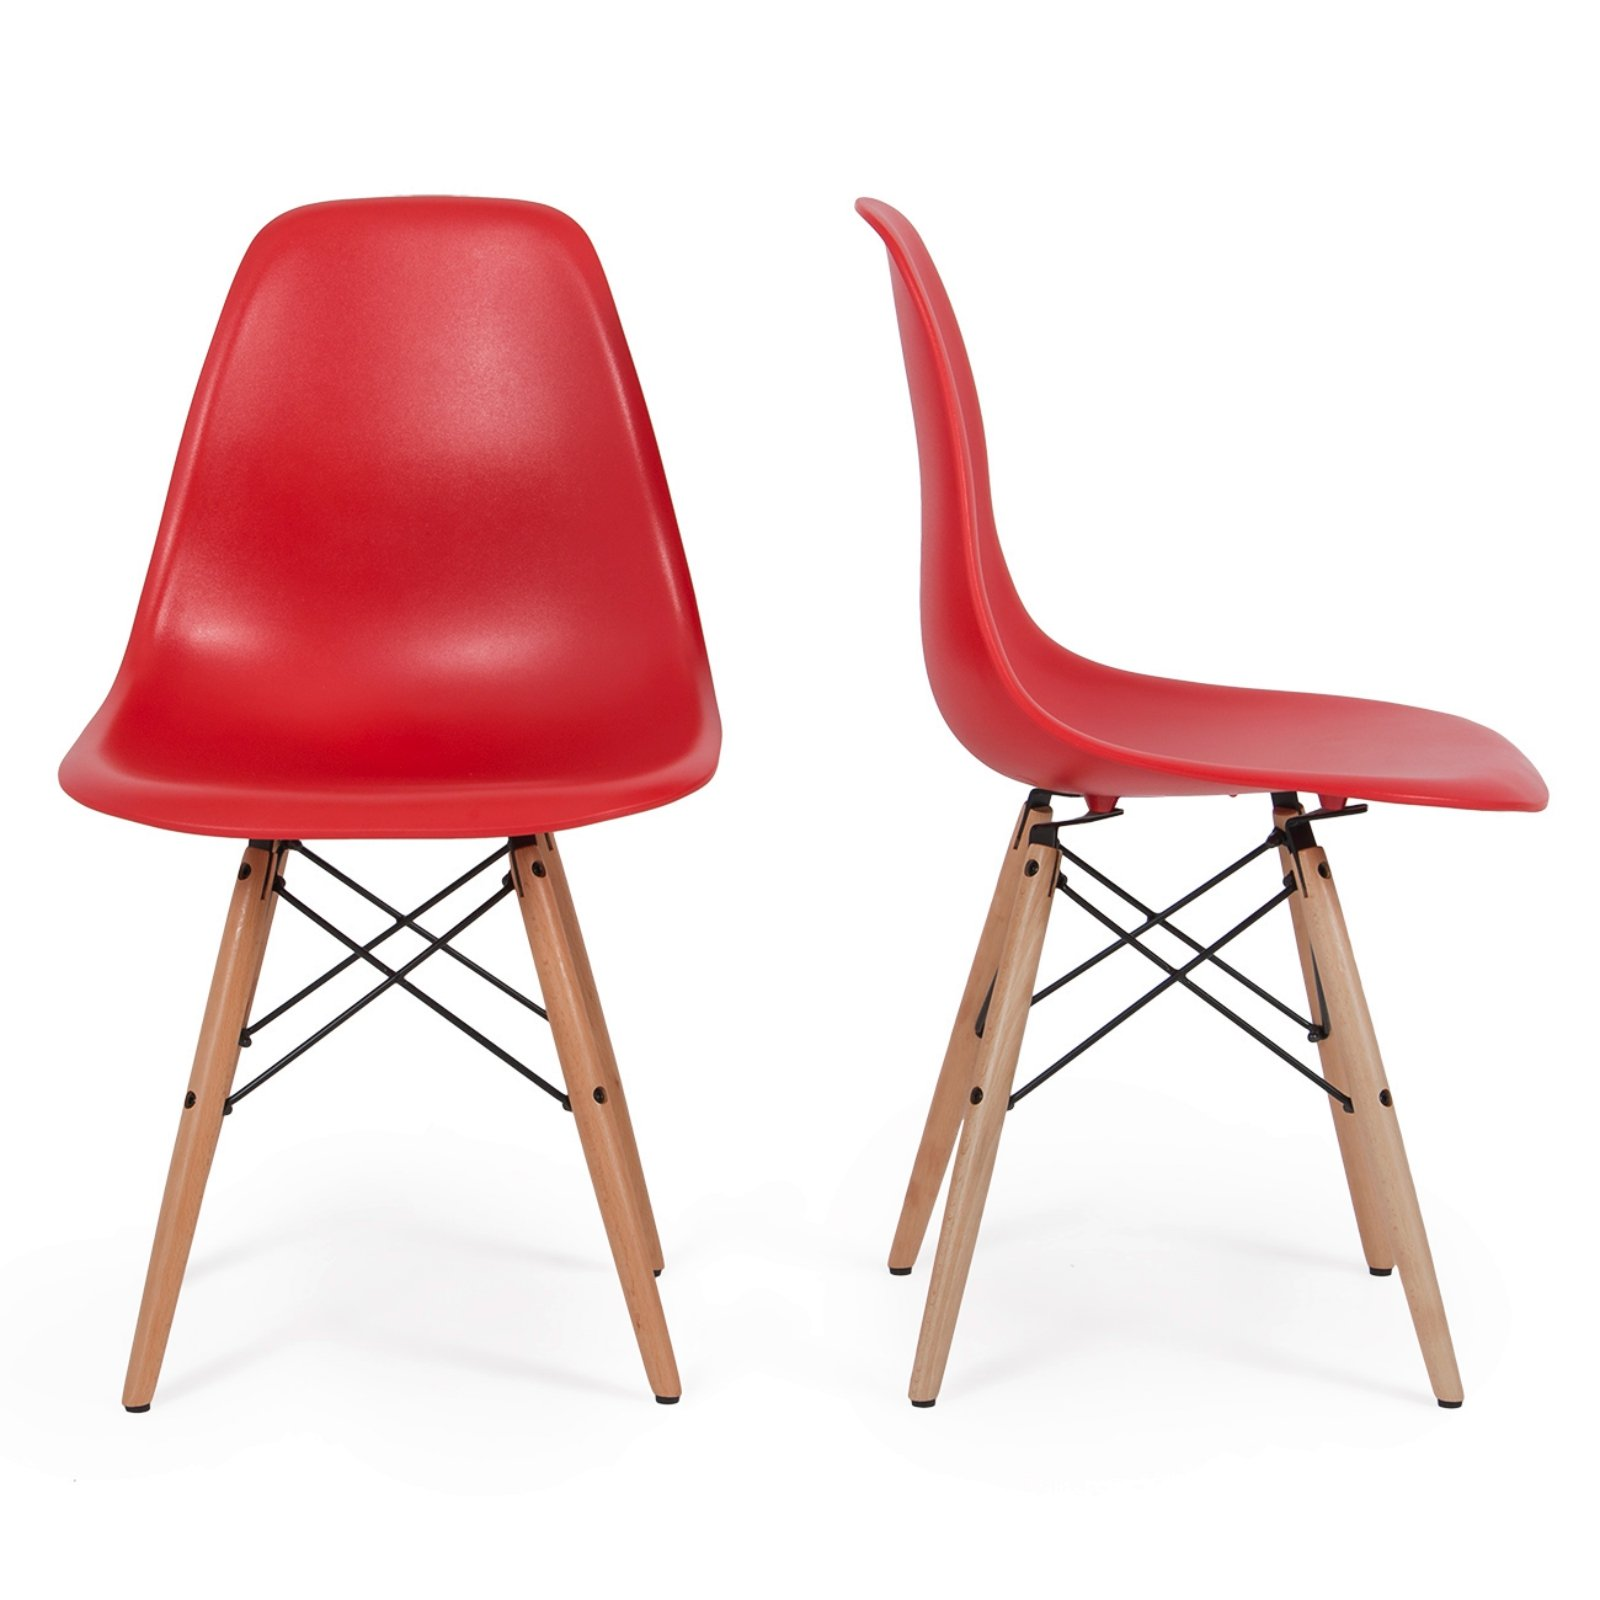 Set of 2 Retro Style Wood Base Mid Century Modern Shell Dining wooden Chair Dowel legs Red #566